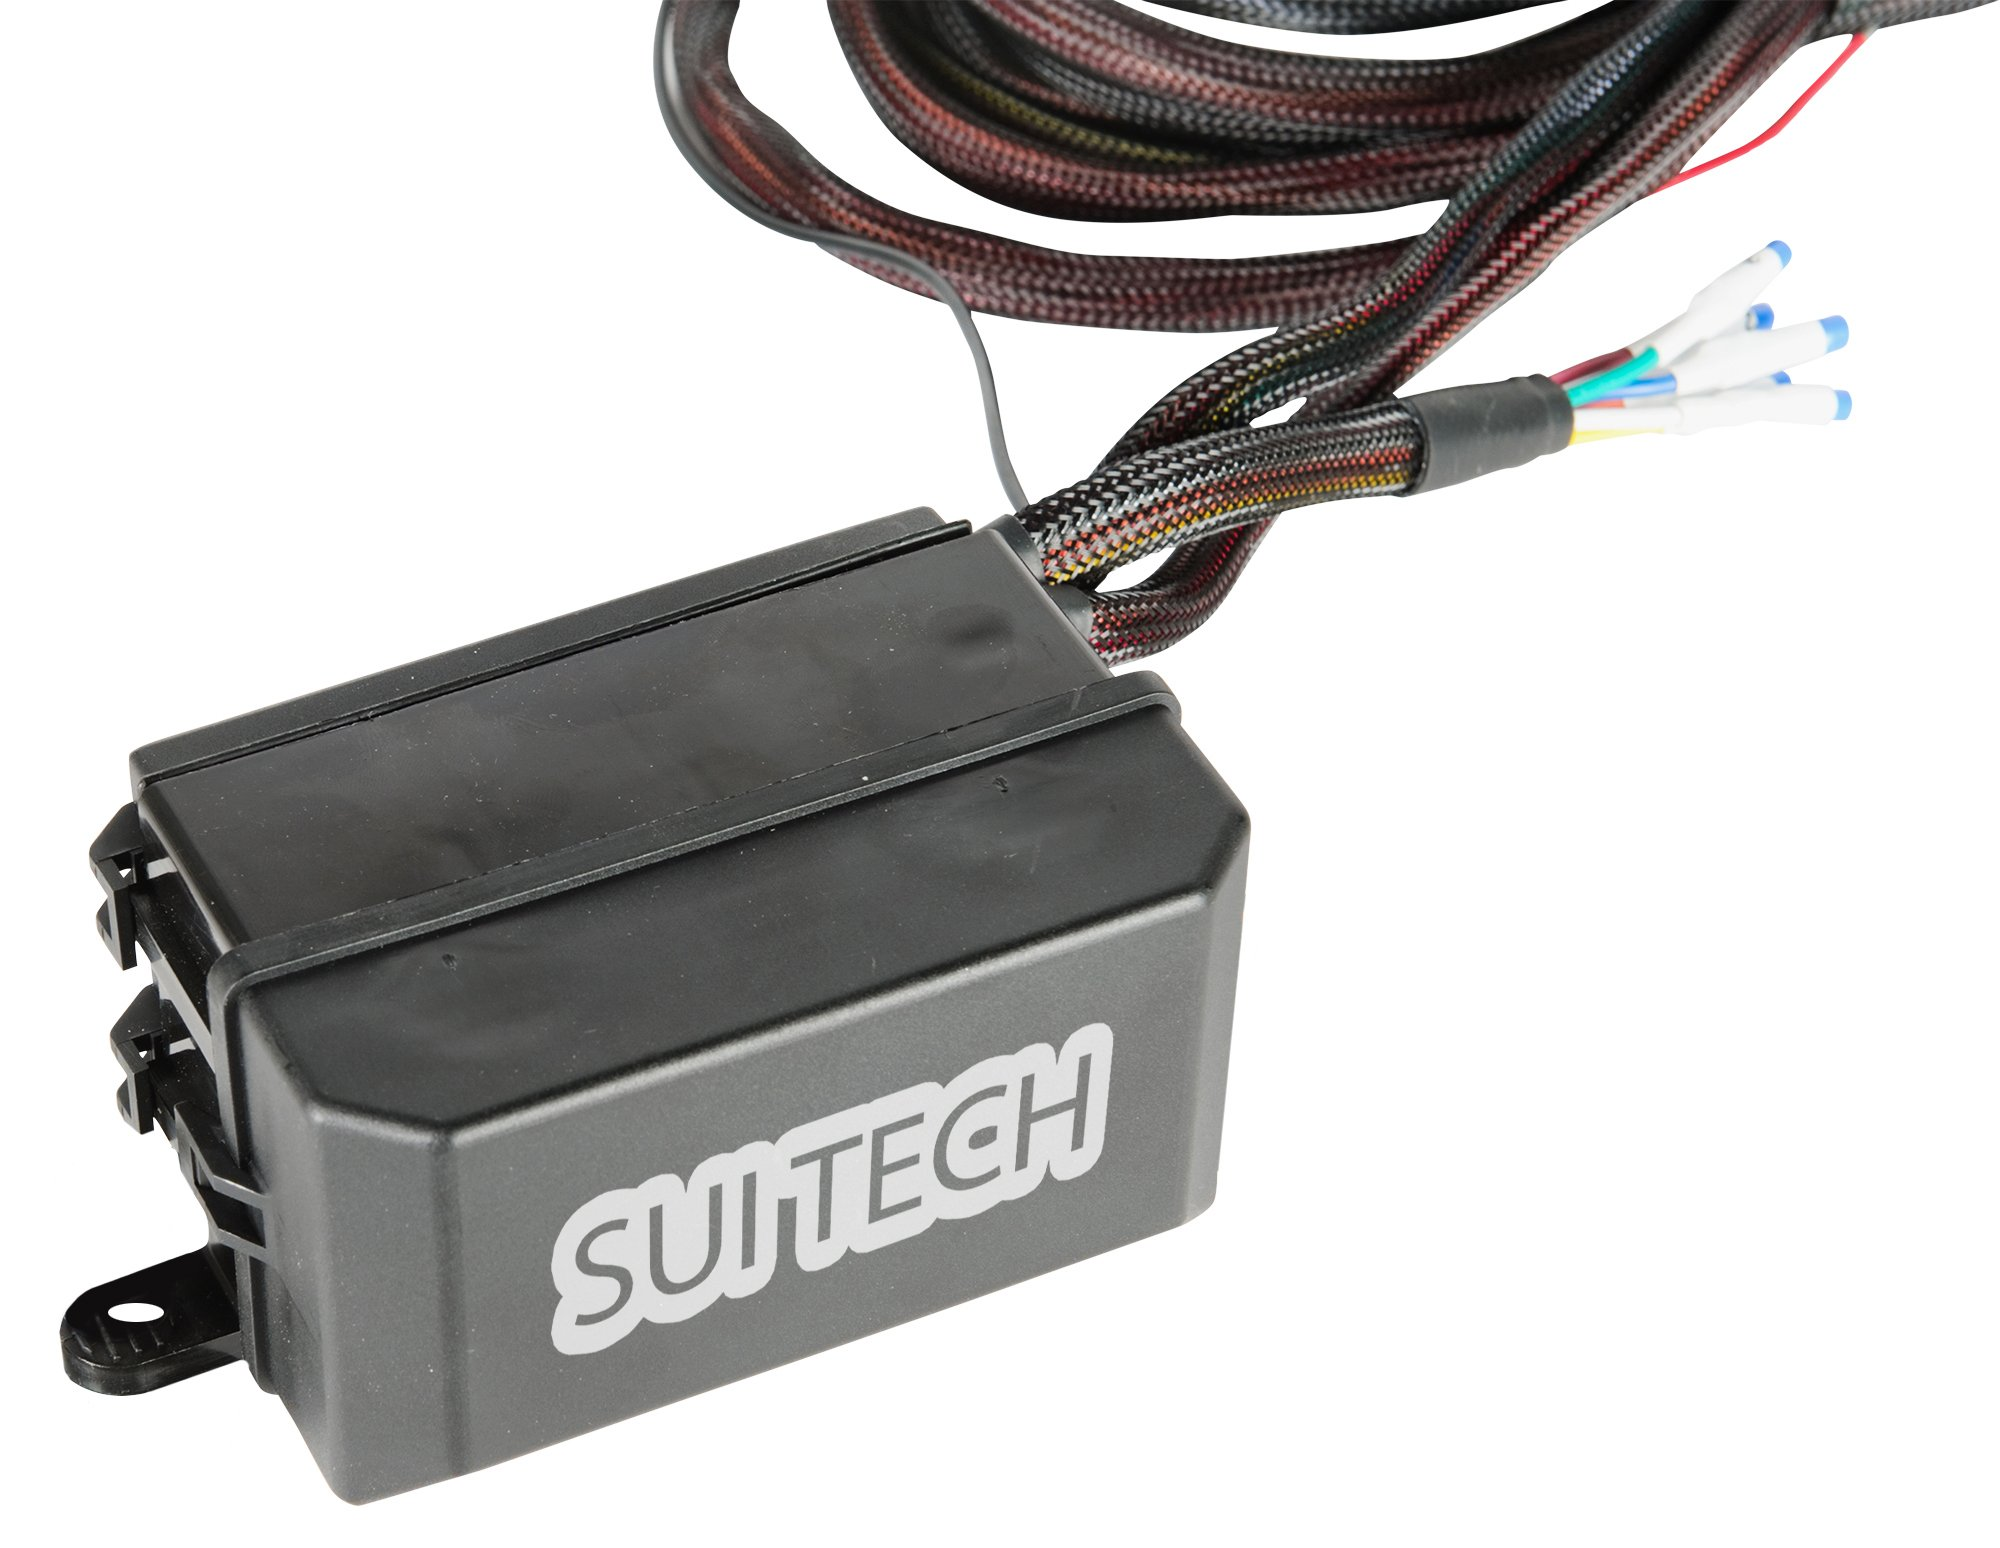 Suitech Universally Adaptable Dc12v Led 6 Switch Panel Electronic Universal Jeep Wiring Harness Relay System With Circuit Control Box Kit For Any Vehicle Power Up To